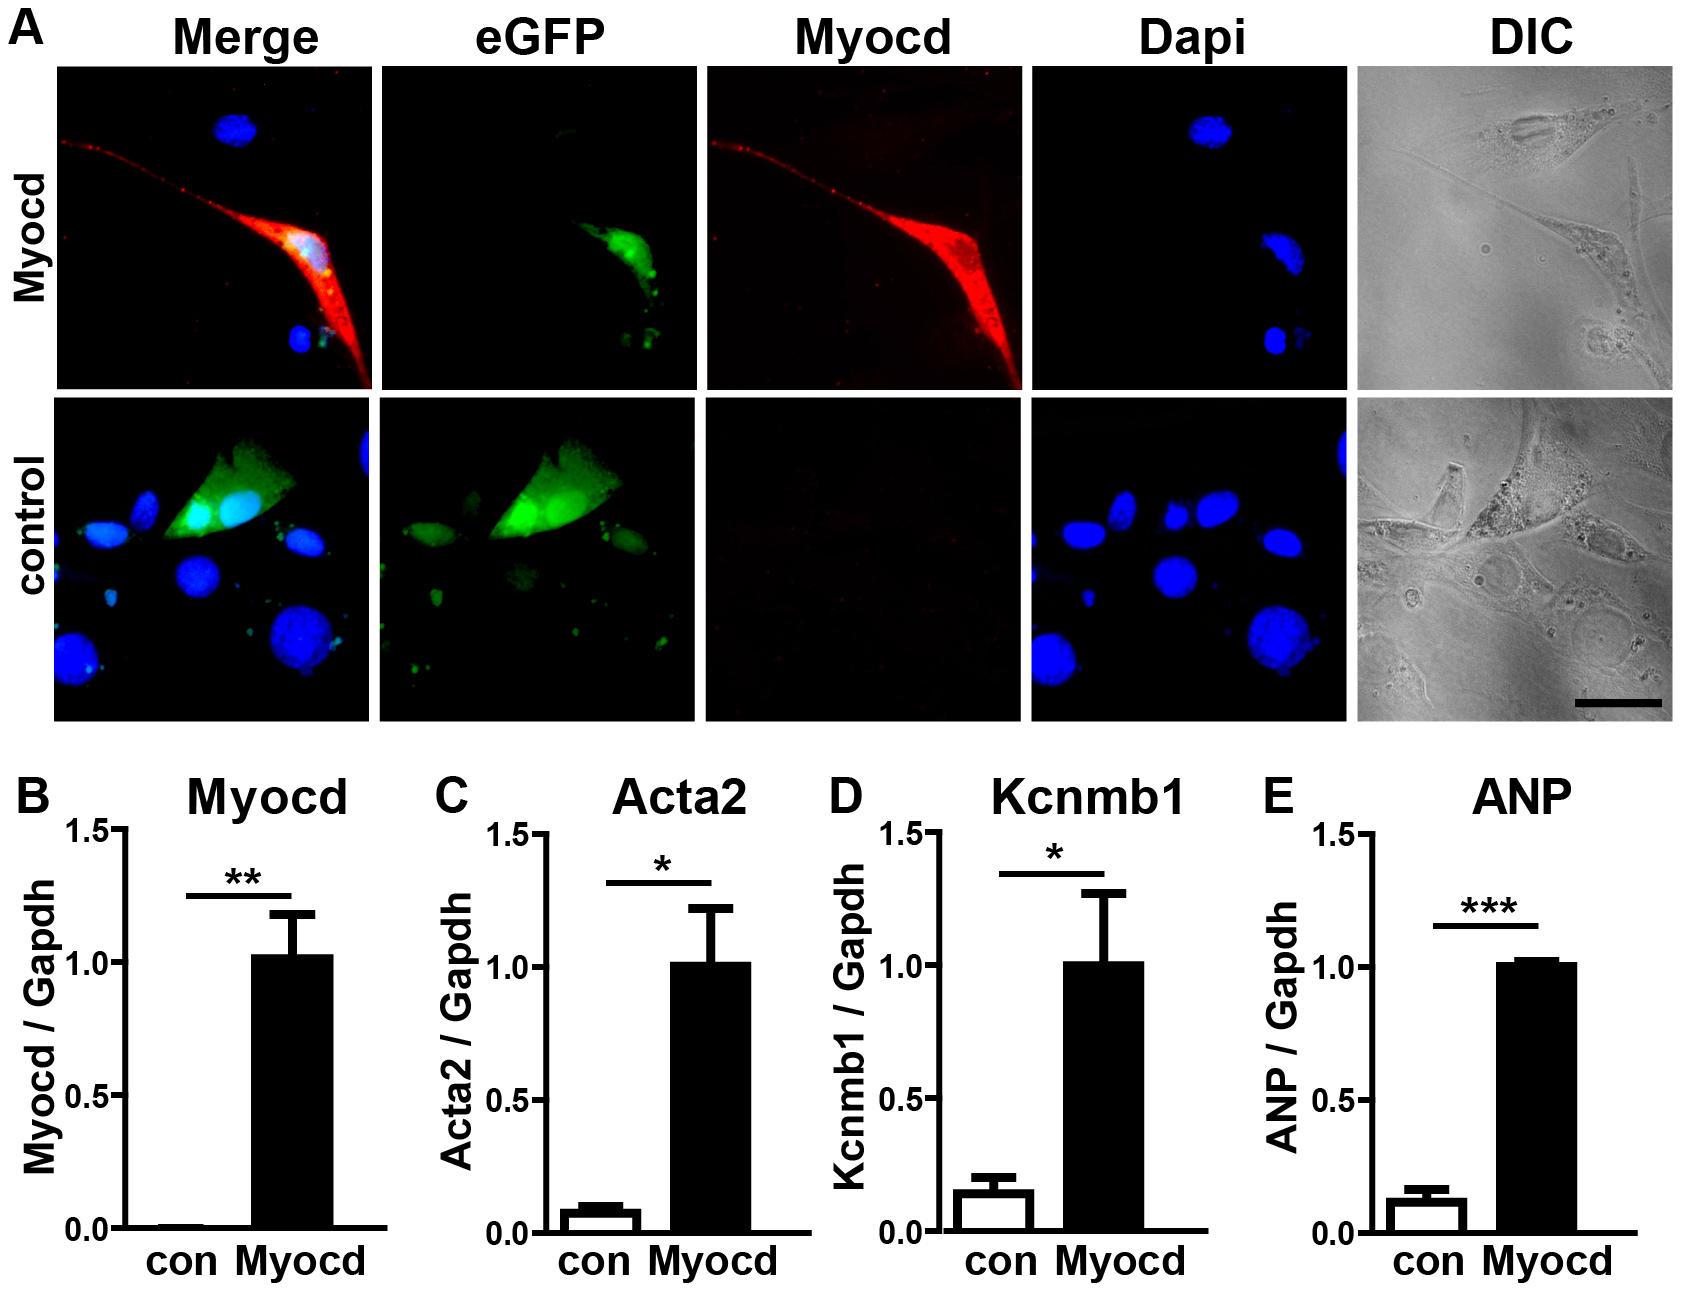 Expression of the miR-1 target myocardin induces smooth muscle cell-like morphology in NIH3T3 cells.